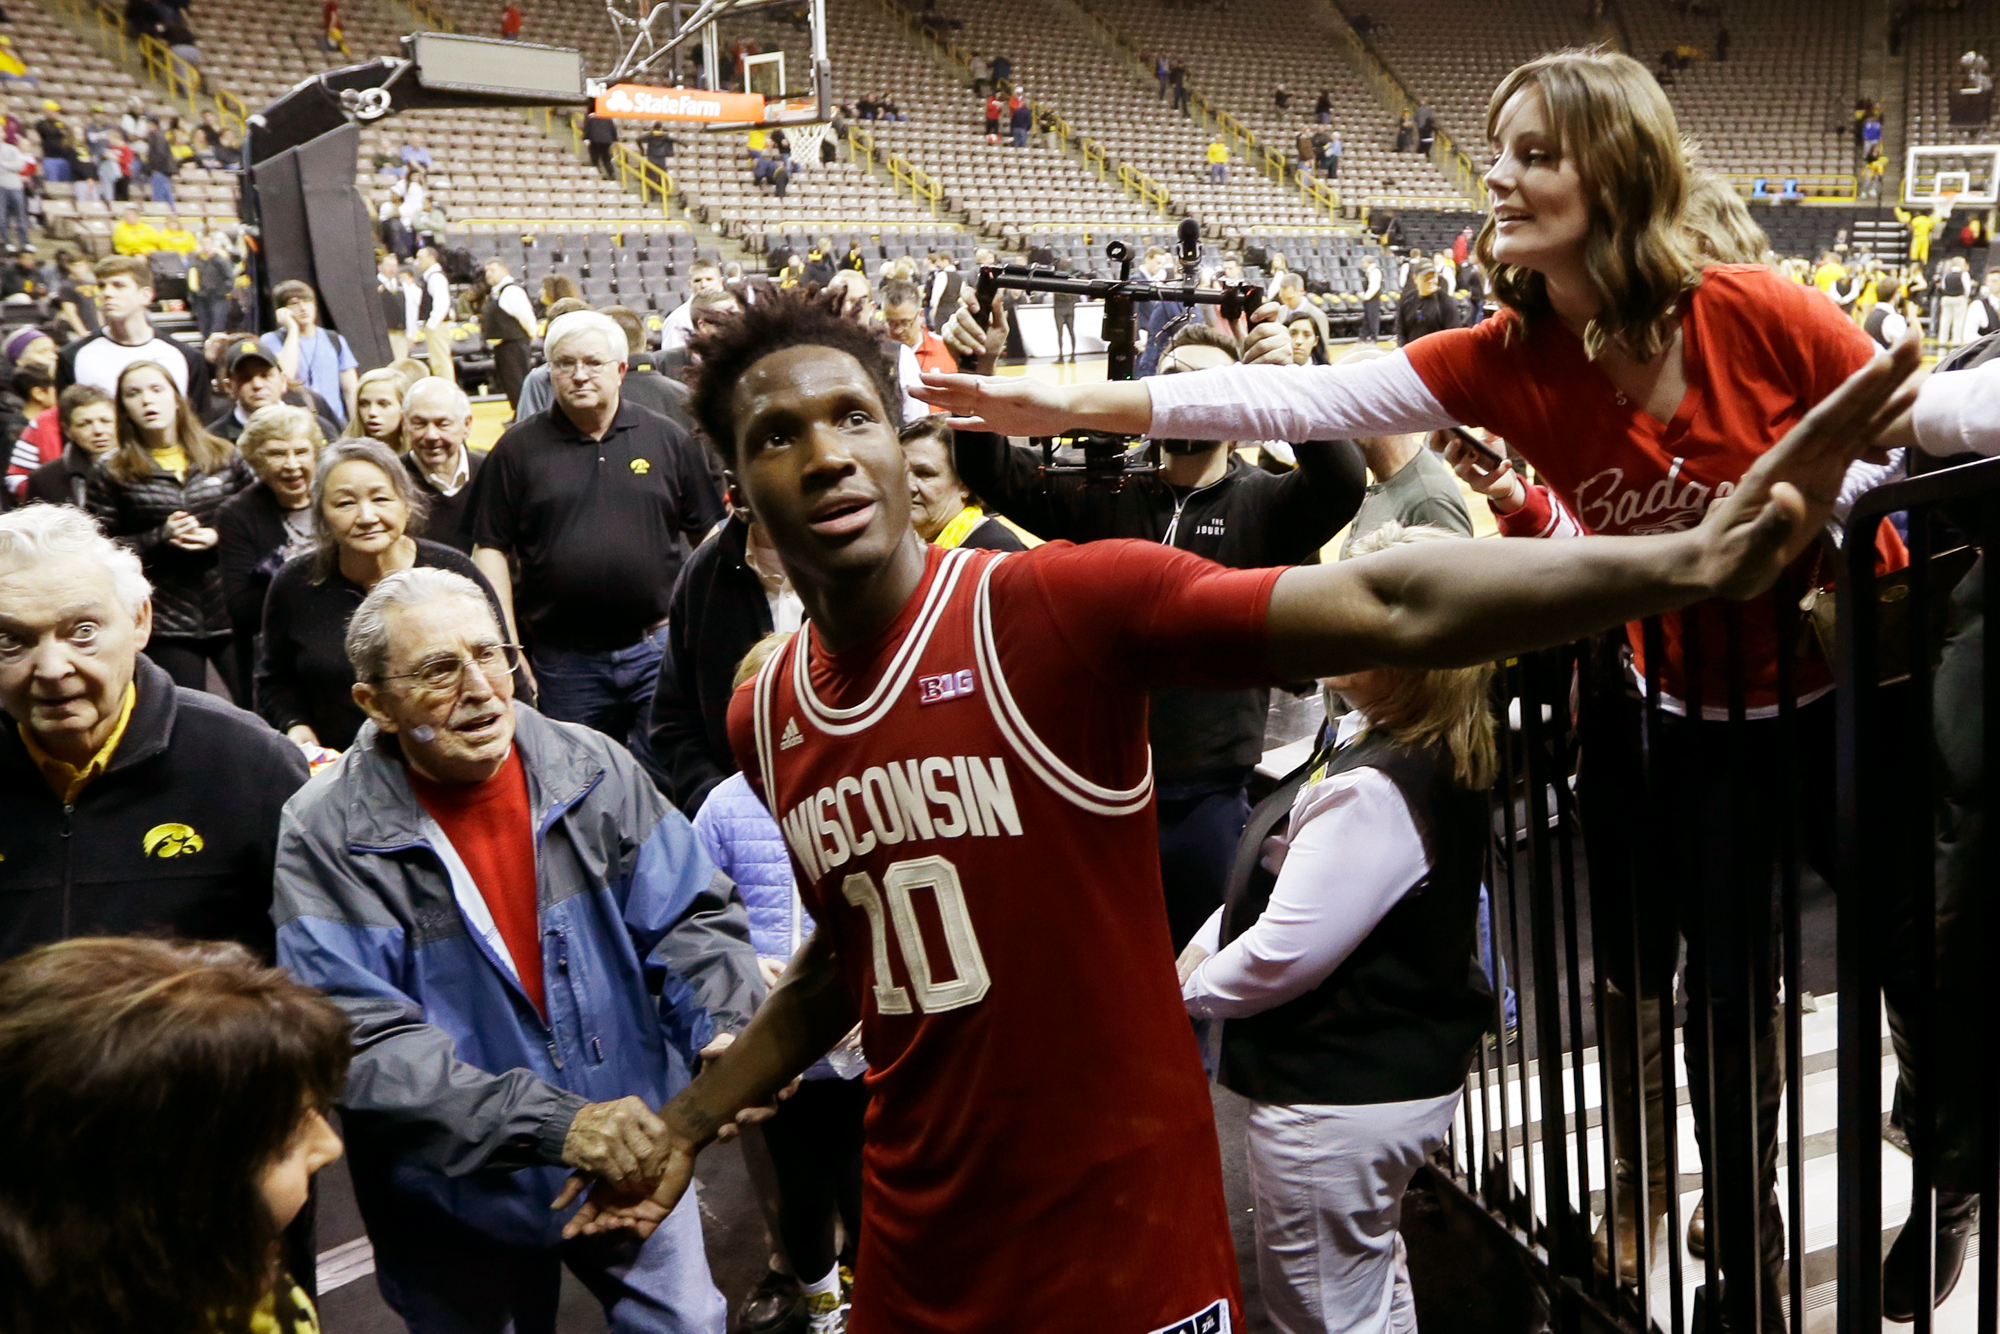 Wisconsin forward Nigel Hayes celebrates with fans after an NCAA college basketball game against Iowa, Wednesday, Feb. 24, 2016, in Iowa City, Iowa.